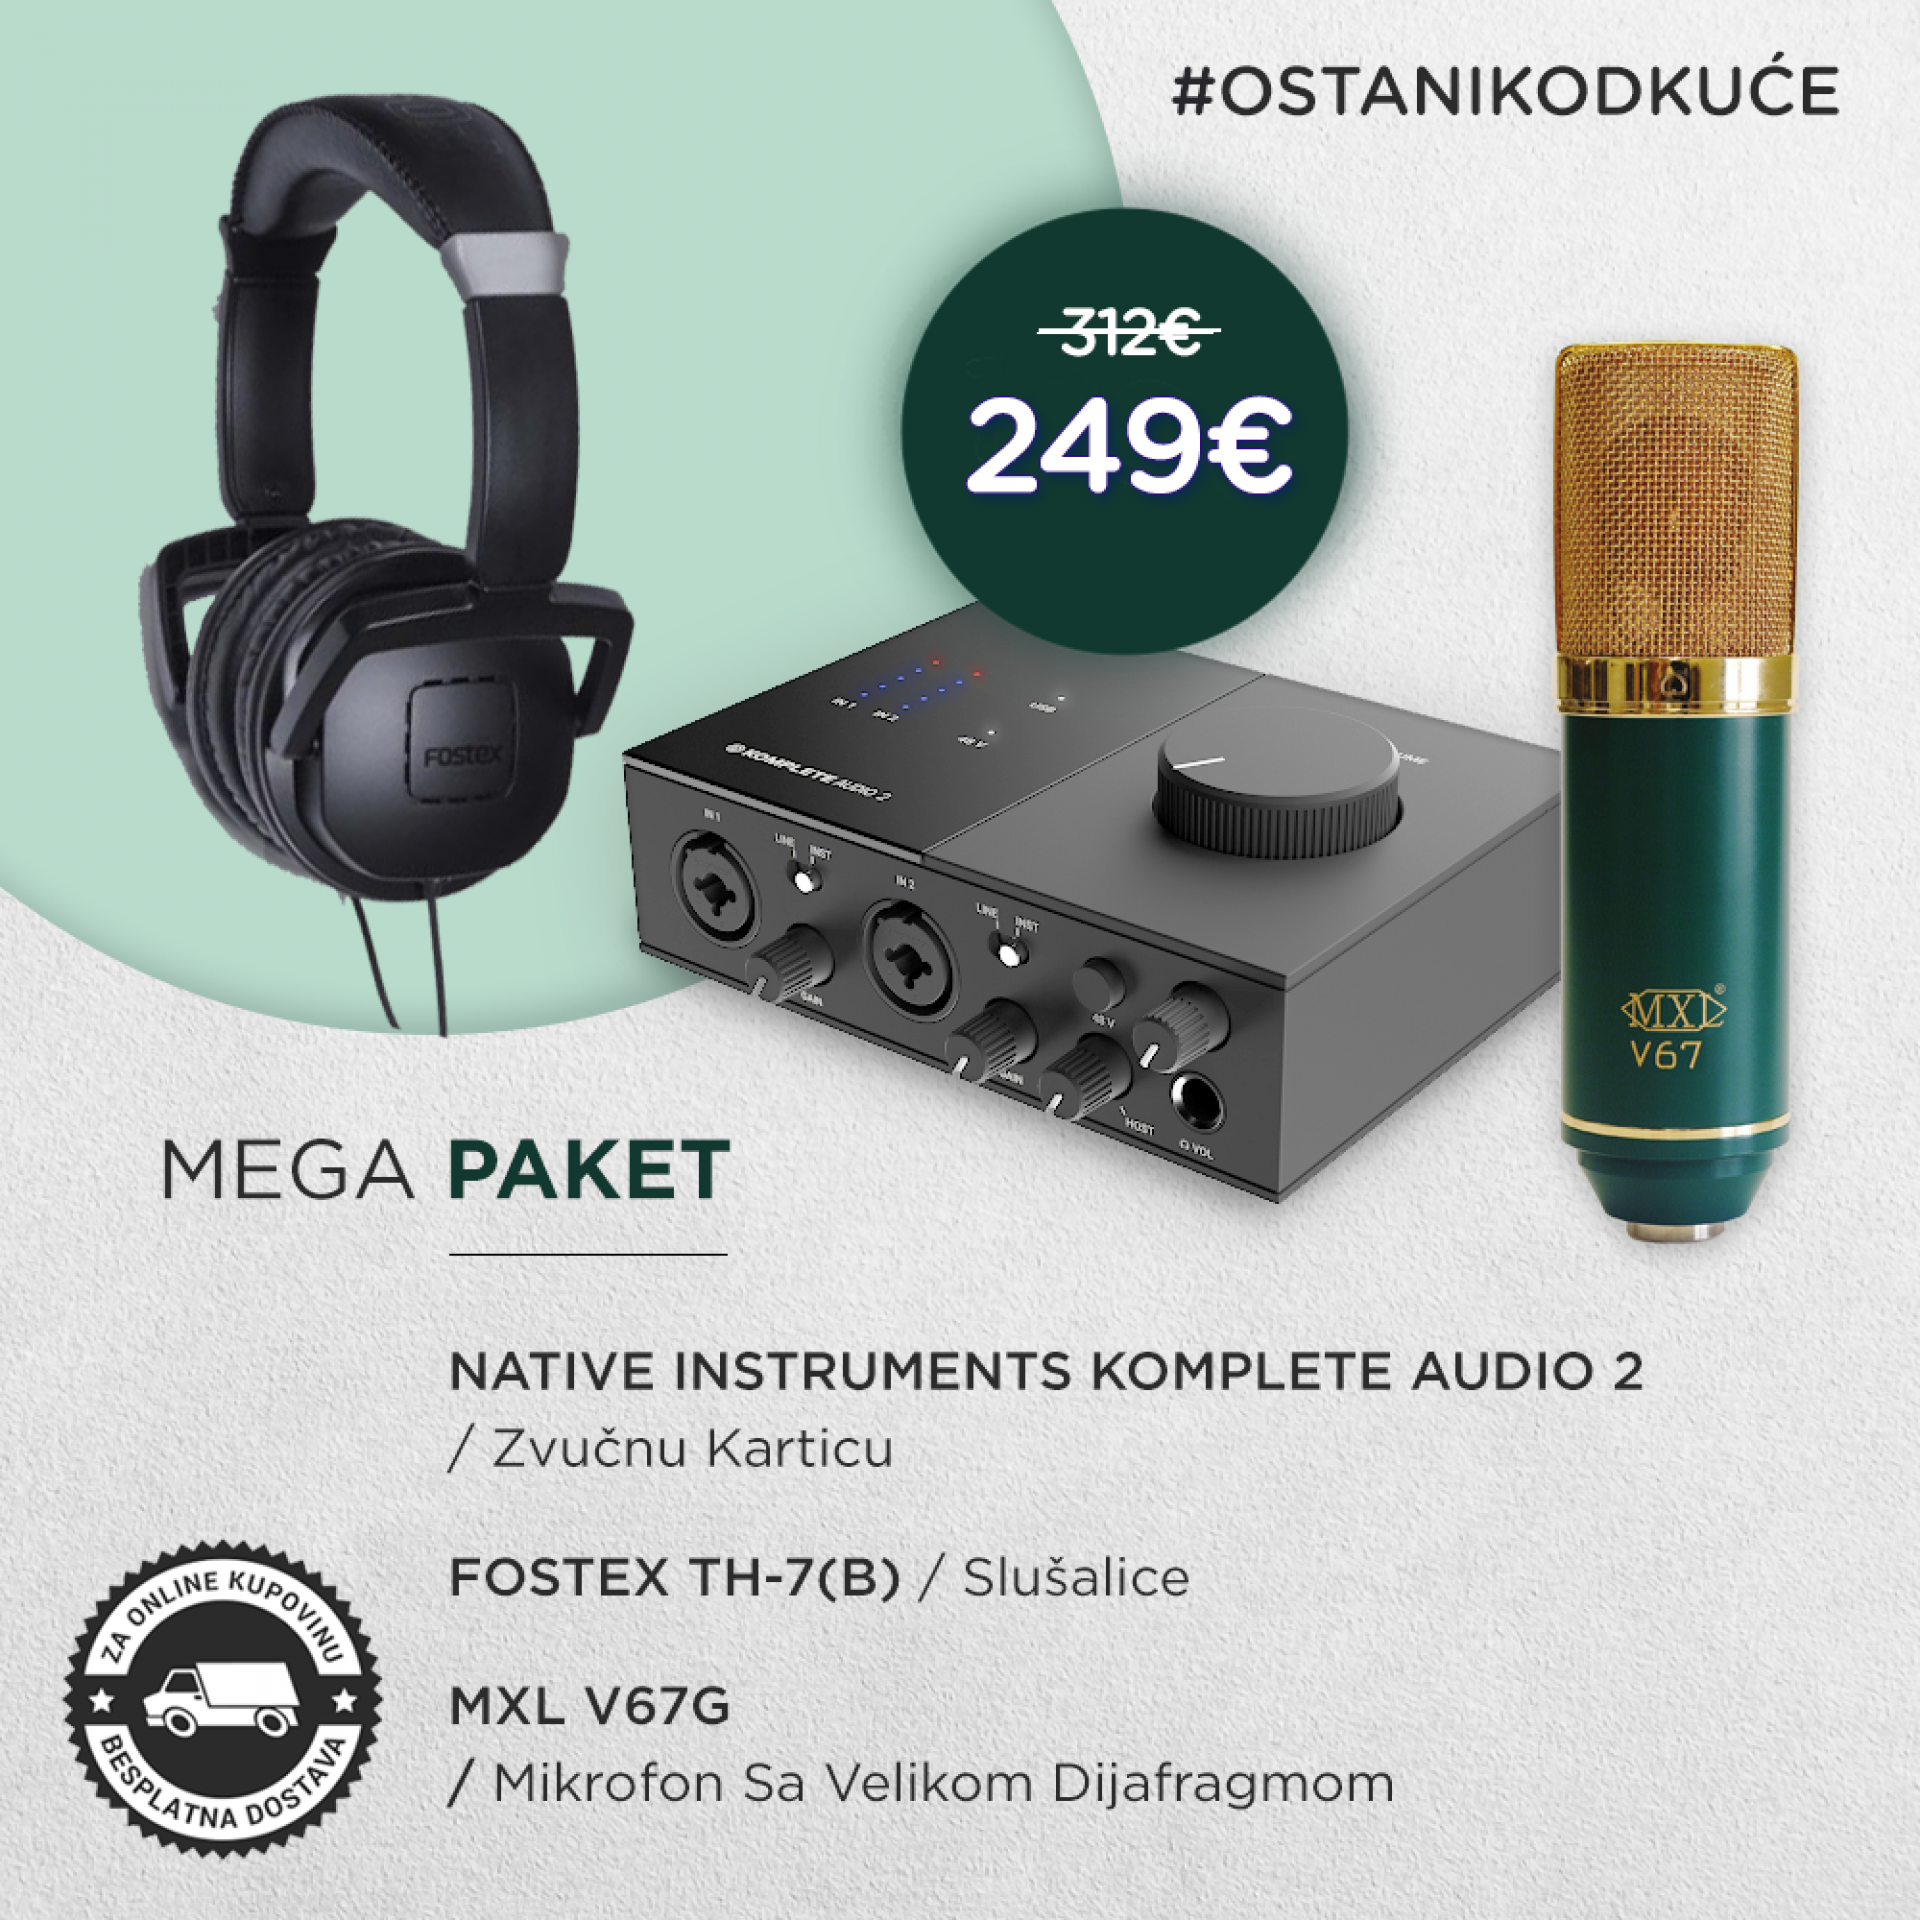 STUDIO PAKET 4 NATIVE INSTRUMENTS KOMPLETE AUDIO 2 + MXL V67G + FOSTEX TH-7